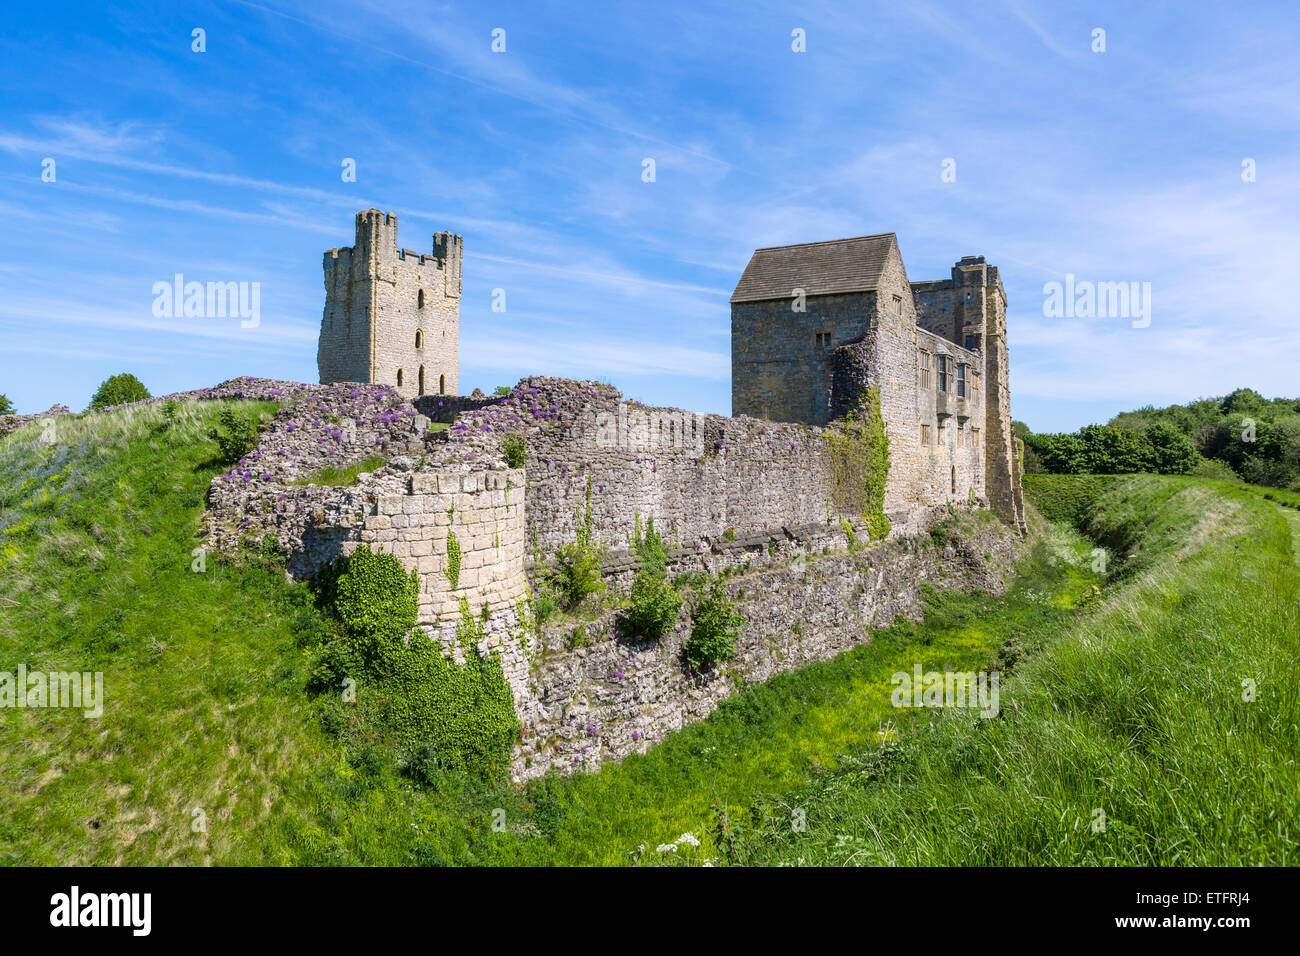 The ruins of medieval Helmsley Castle, Helmsley, North Yorkshire, England, UK - Stock Image